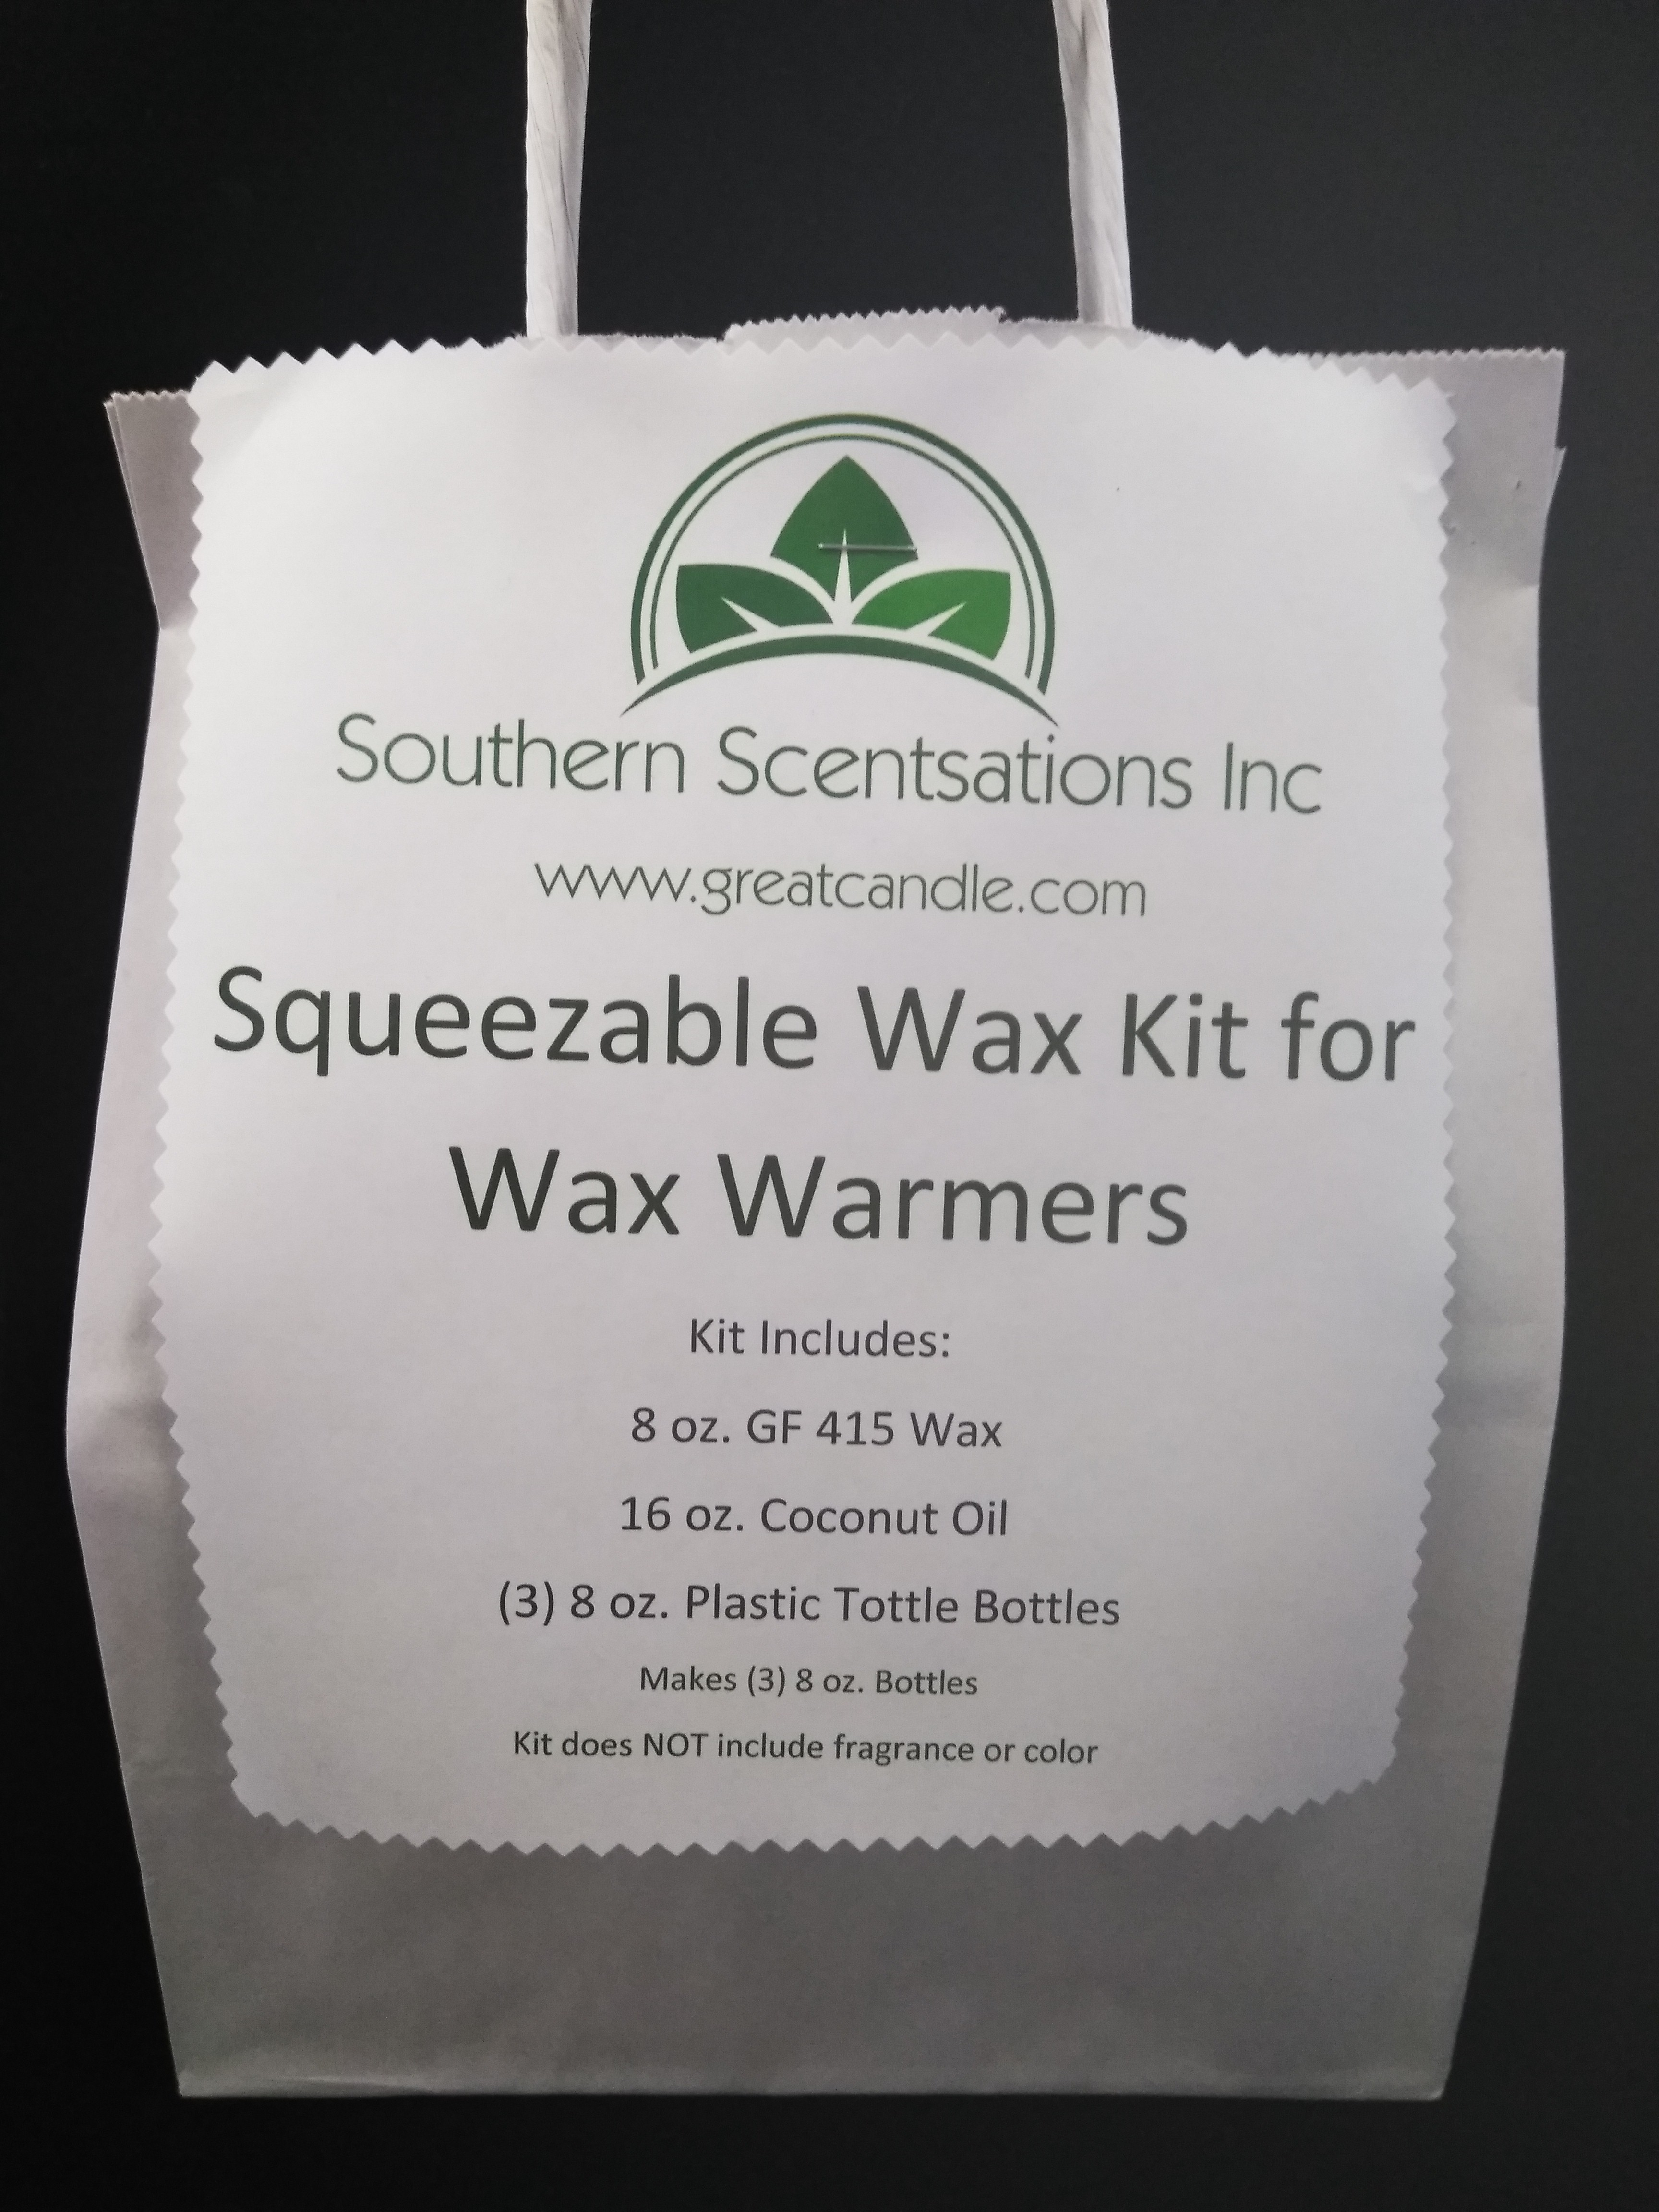 Squeezable Wax Kit for Wax Warmers